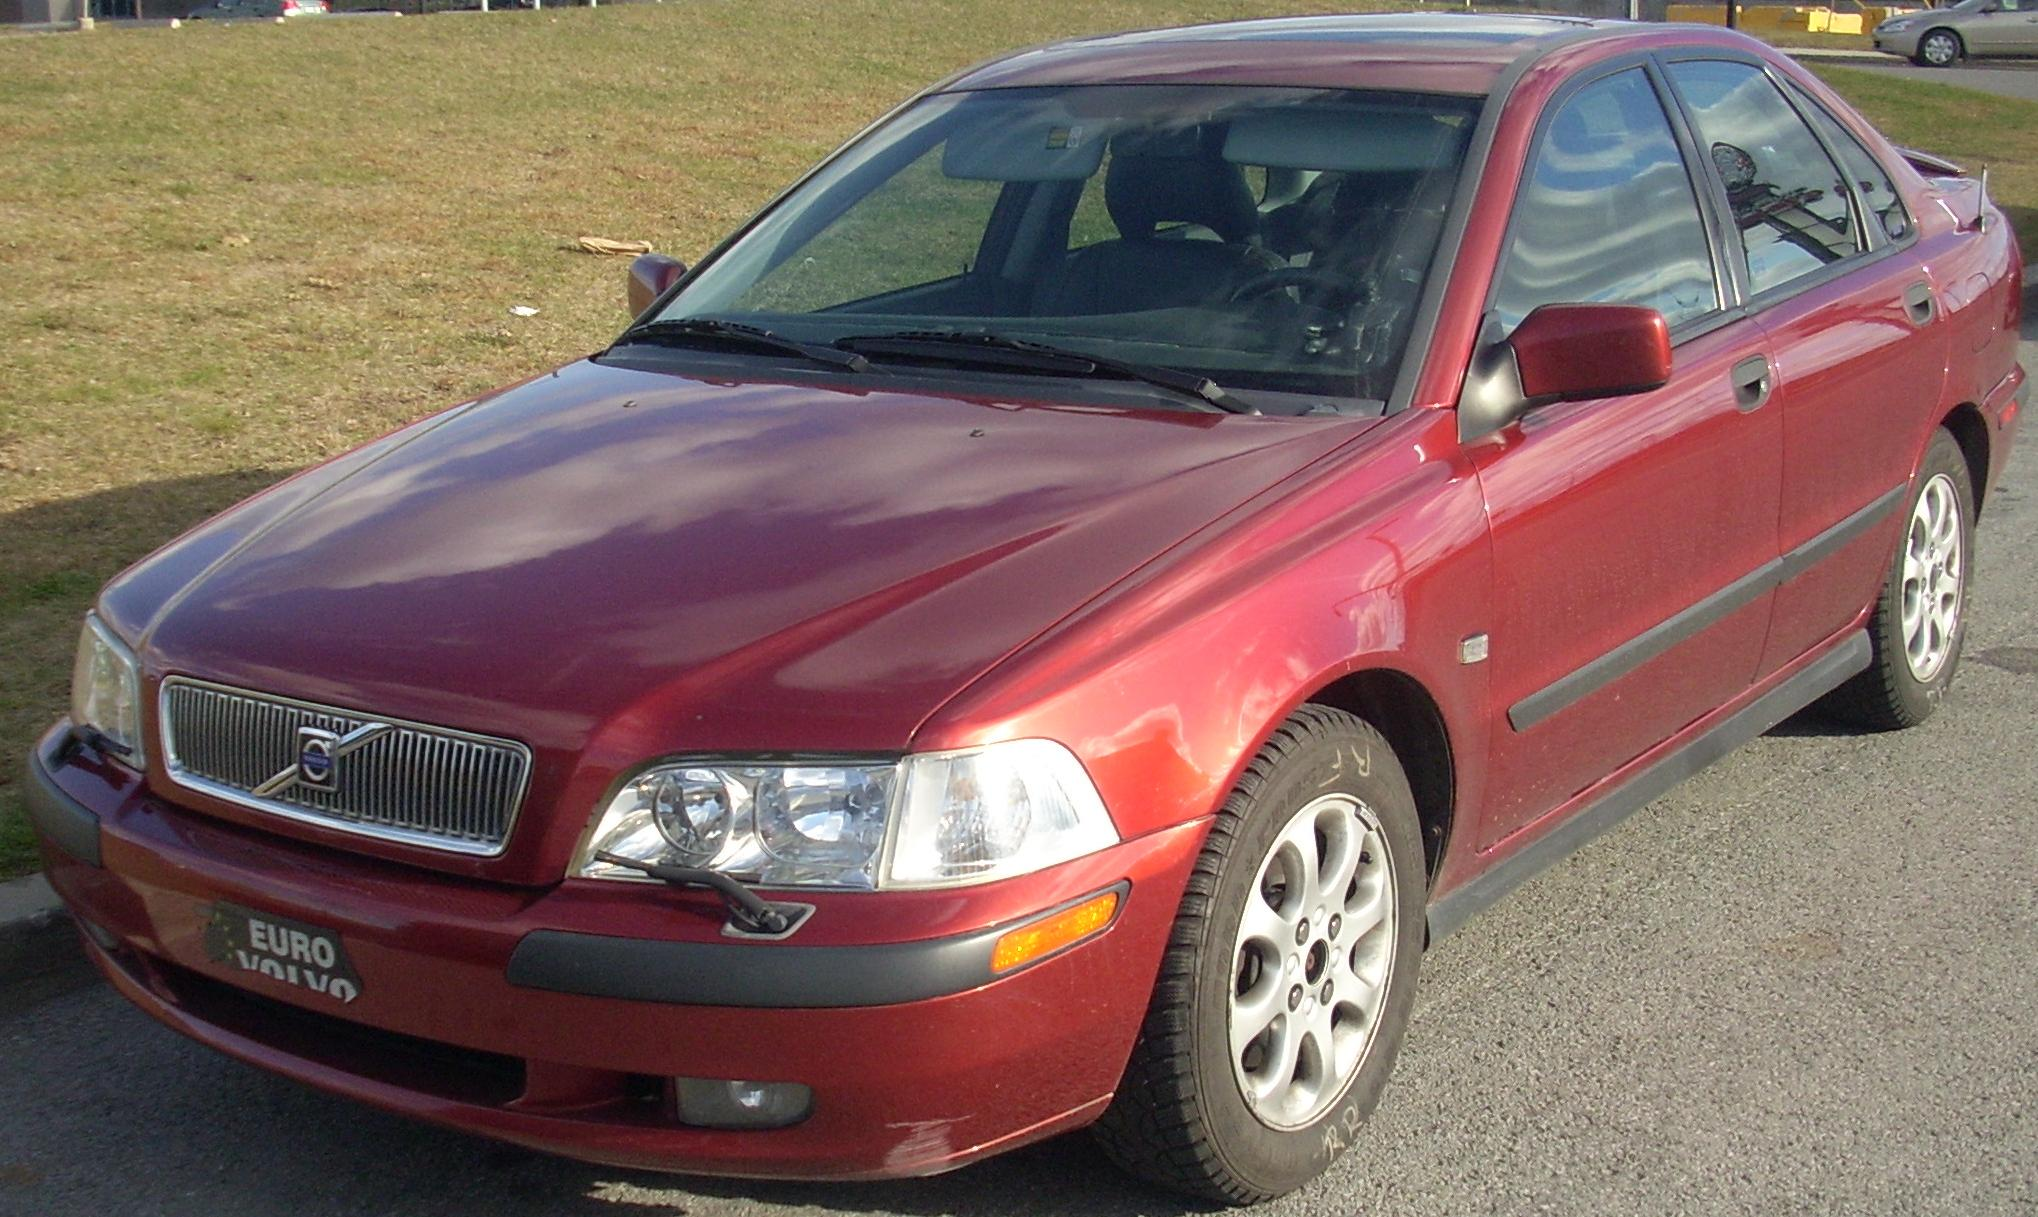 File:2000-01 Volvo S40.JPG - Wikimedia Commons